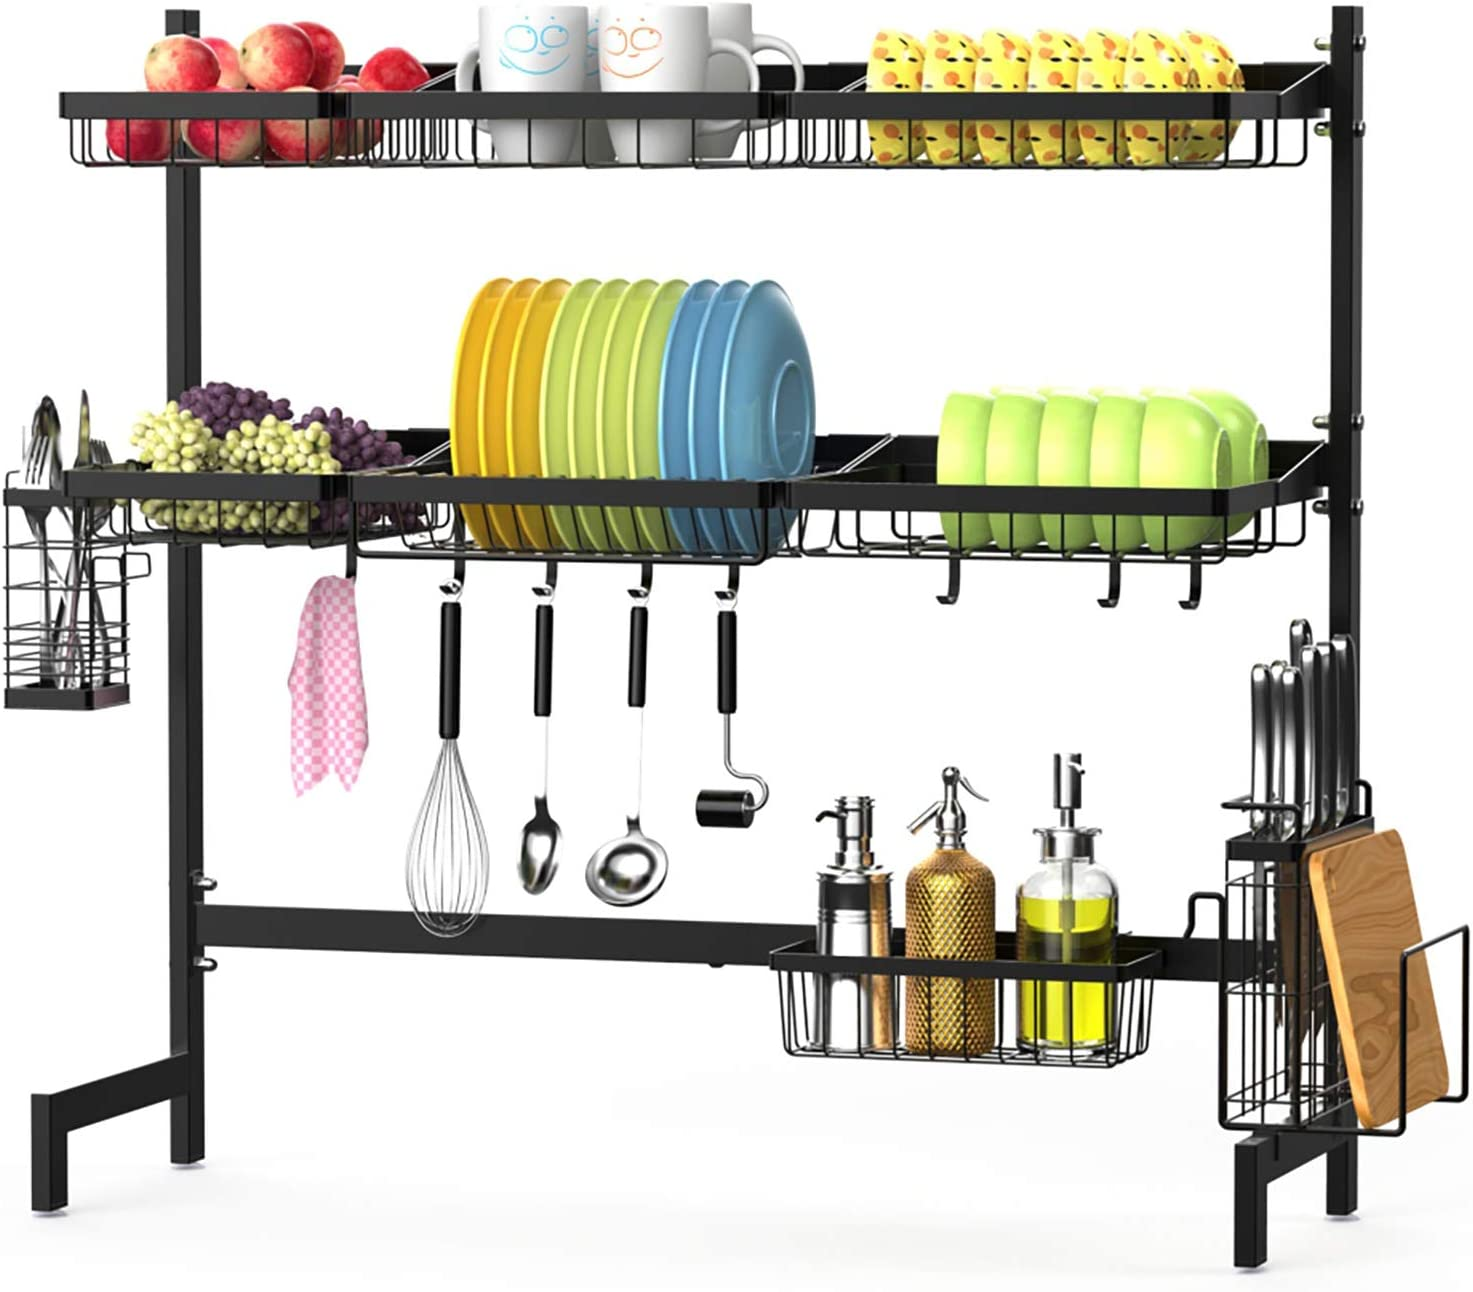 Over The Sink Dish Drying Rack F Color 3 Tier Large Stainless Steel Dish Drying Rack For Kitchen Counter Dish Drainer Shelf With Utensils Holder Black